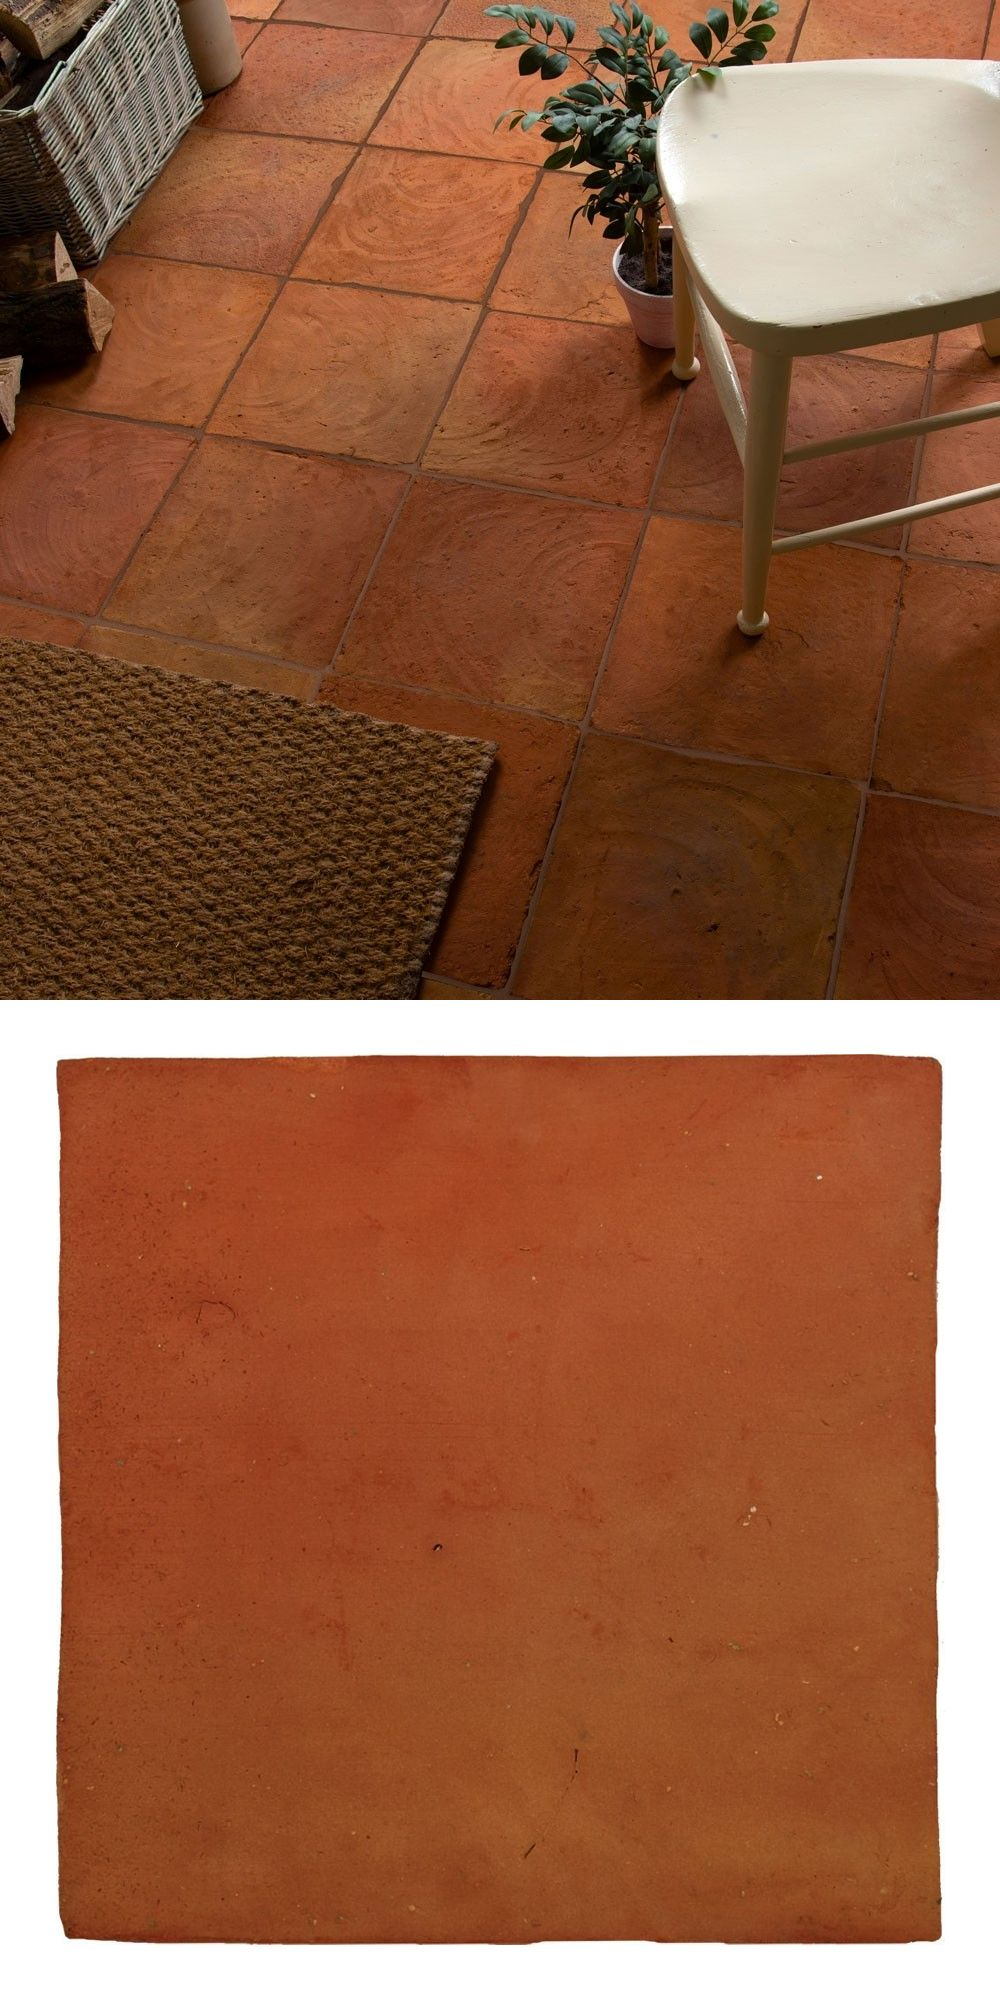 A Handmade Terracotta Red Clay Tile With A Heavily Textured Aged Appearance The Natural Terracotta Terradine Tile Terracotta Tiles Natural Flooring Clay Tiles